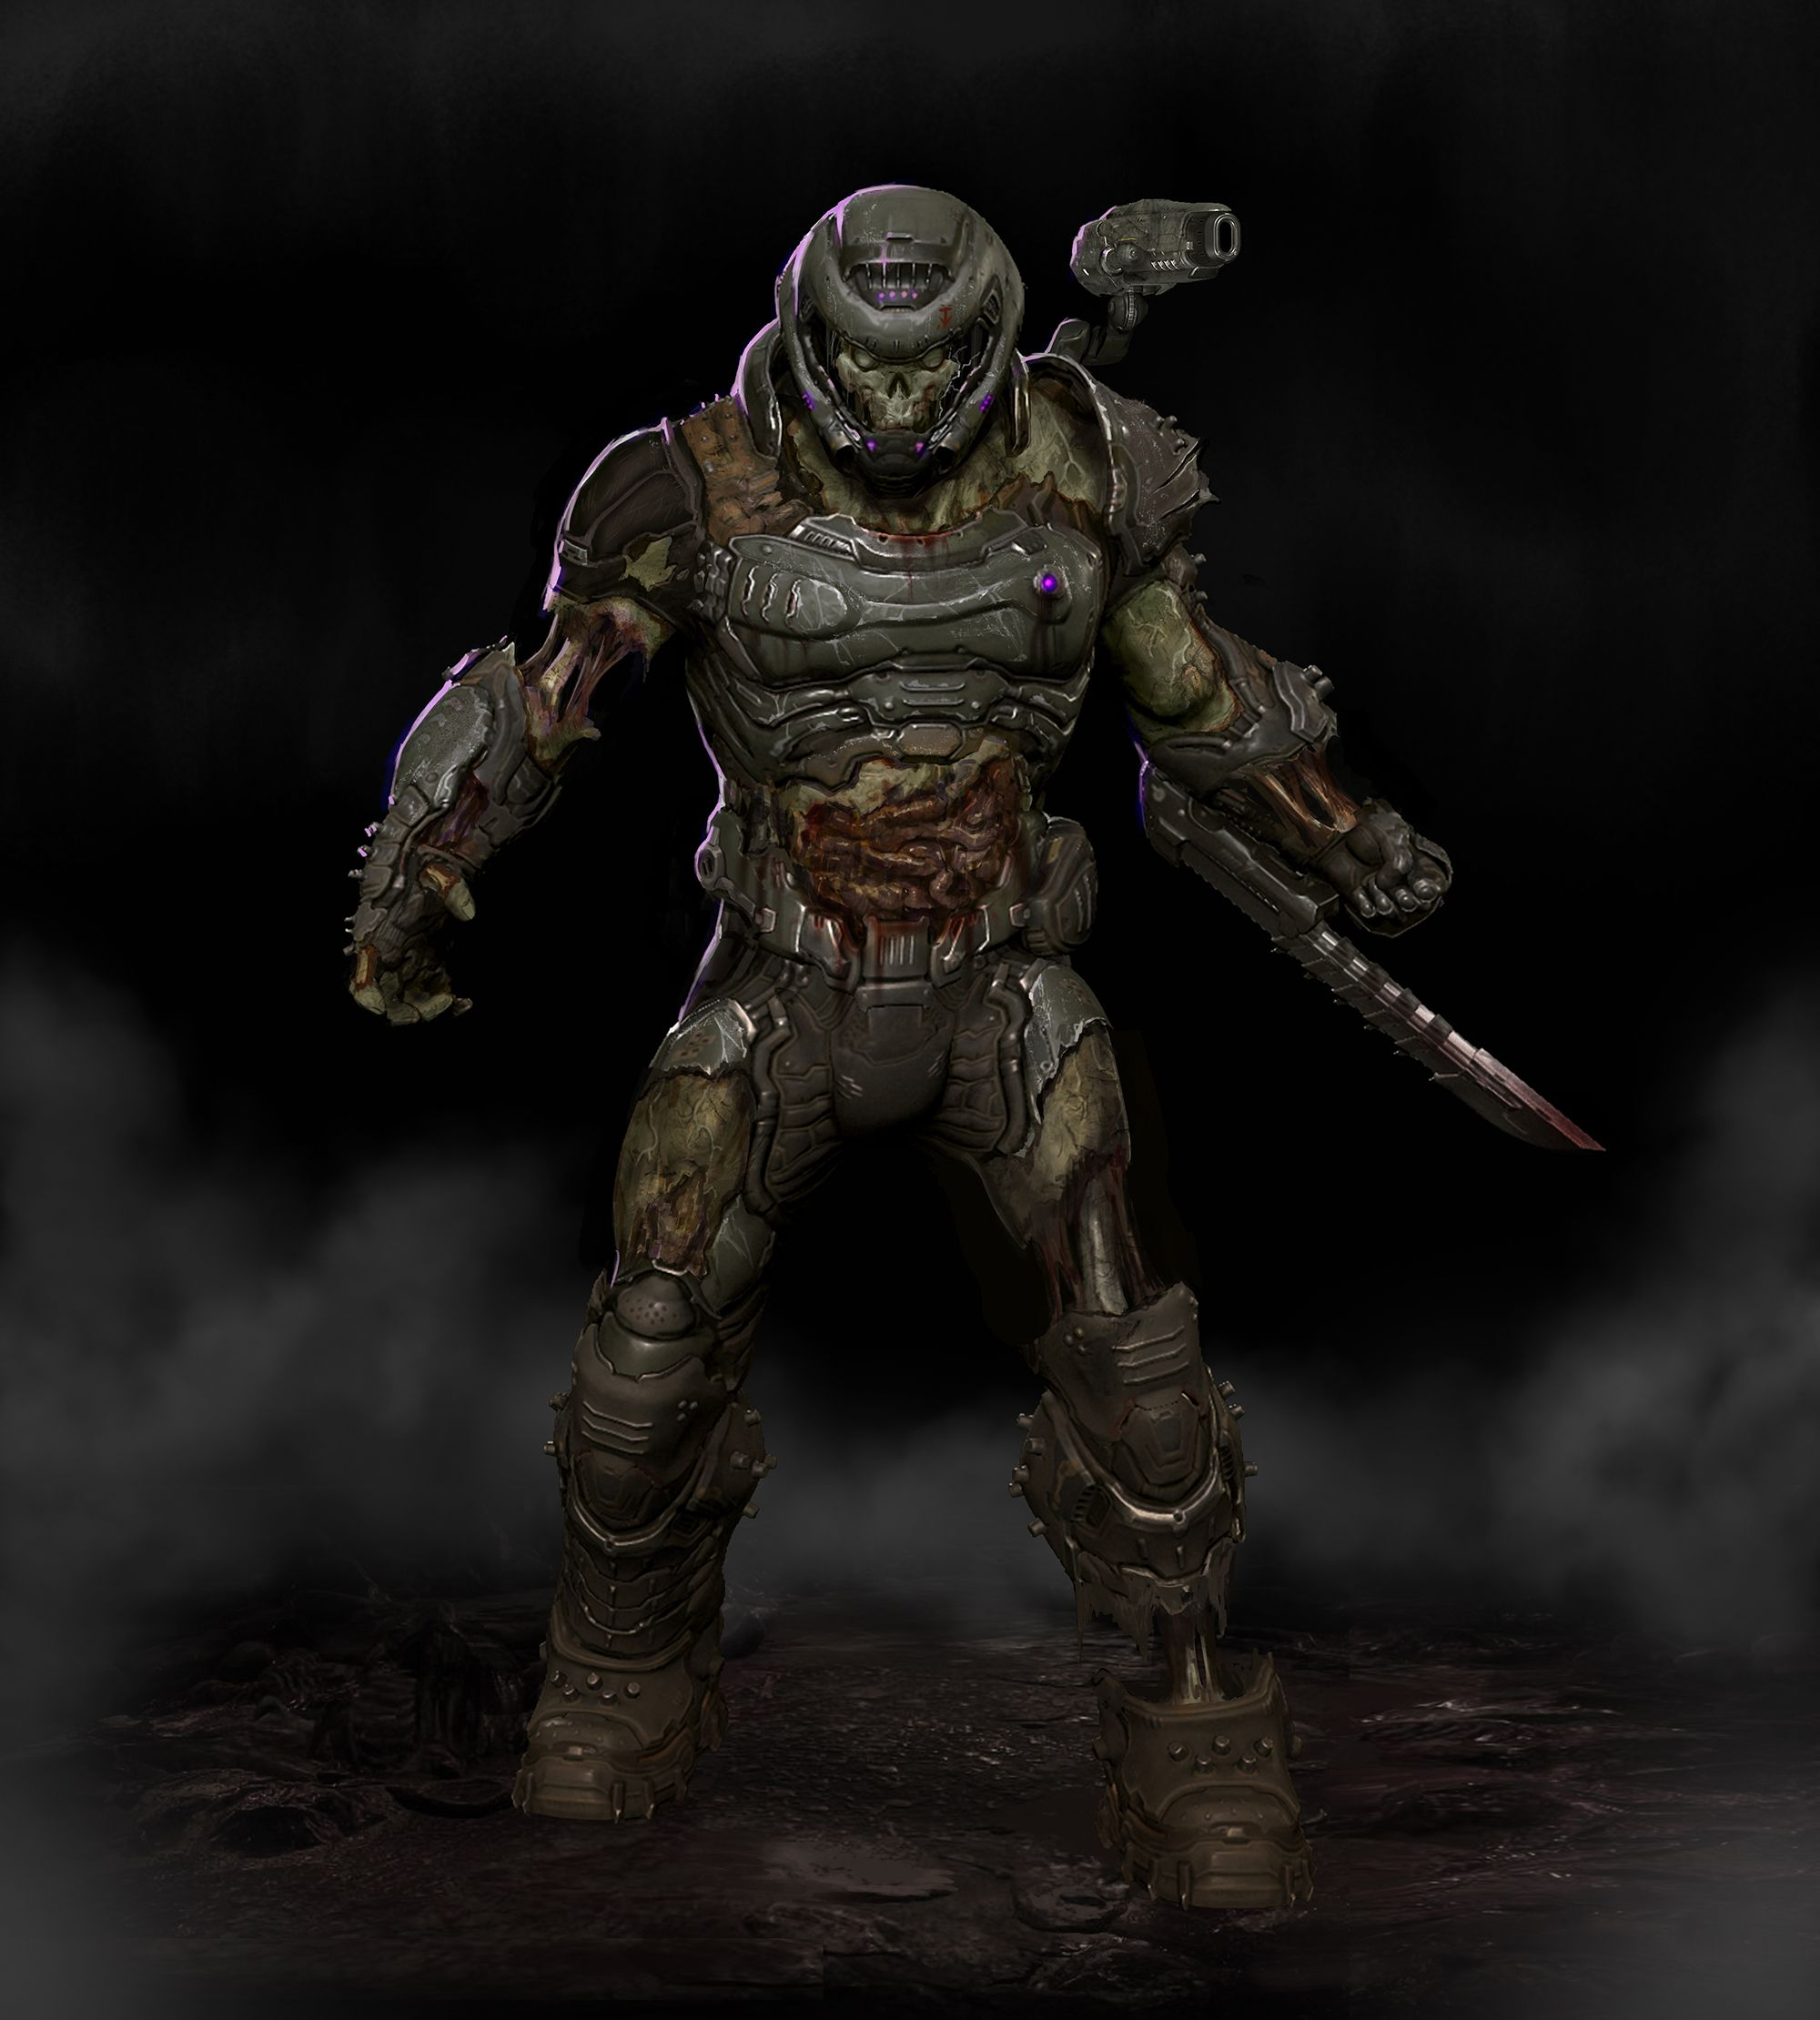 Join The Slayers Clud And Get This Skin Wen Doom Eternal Comes Out